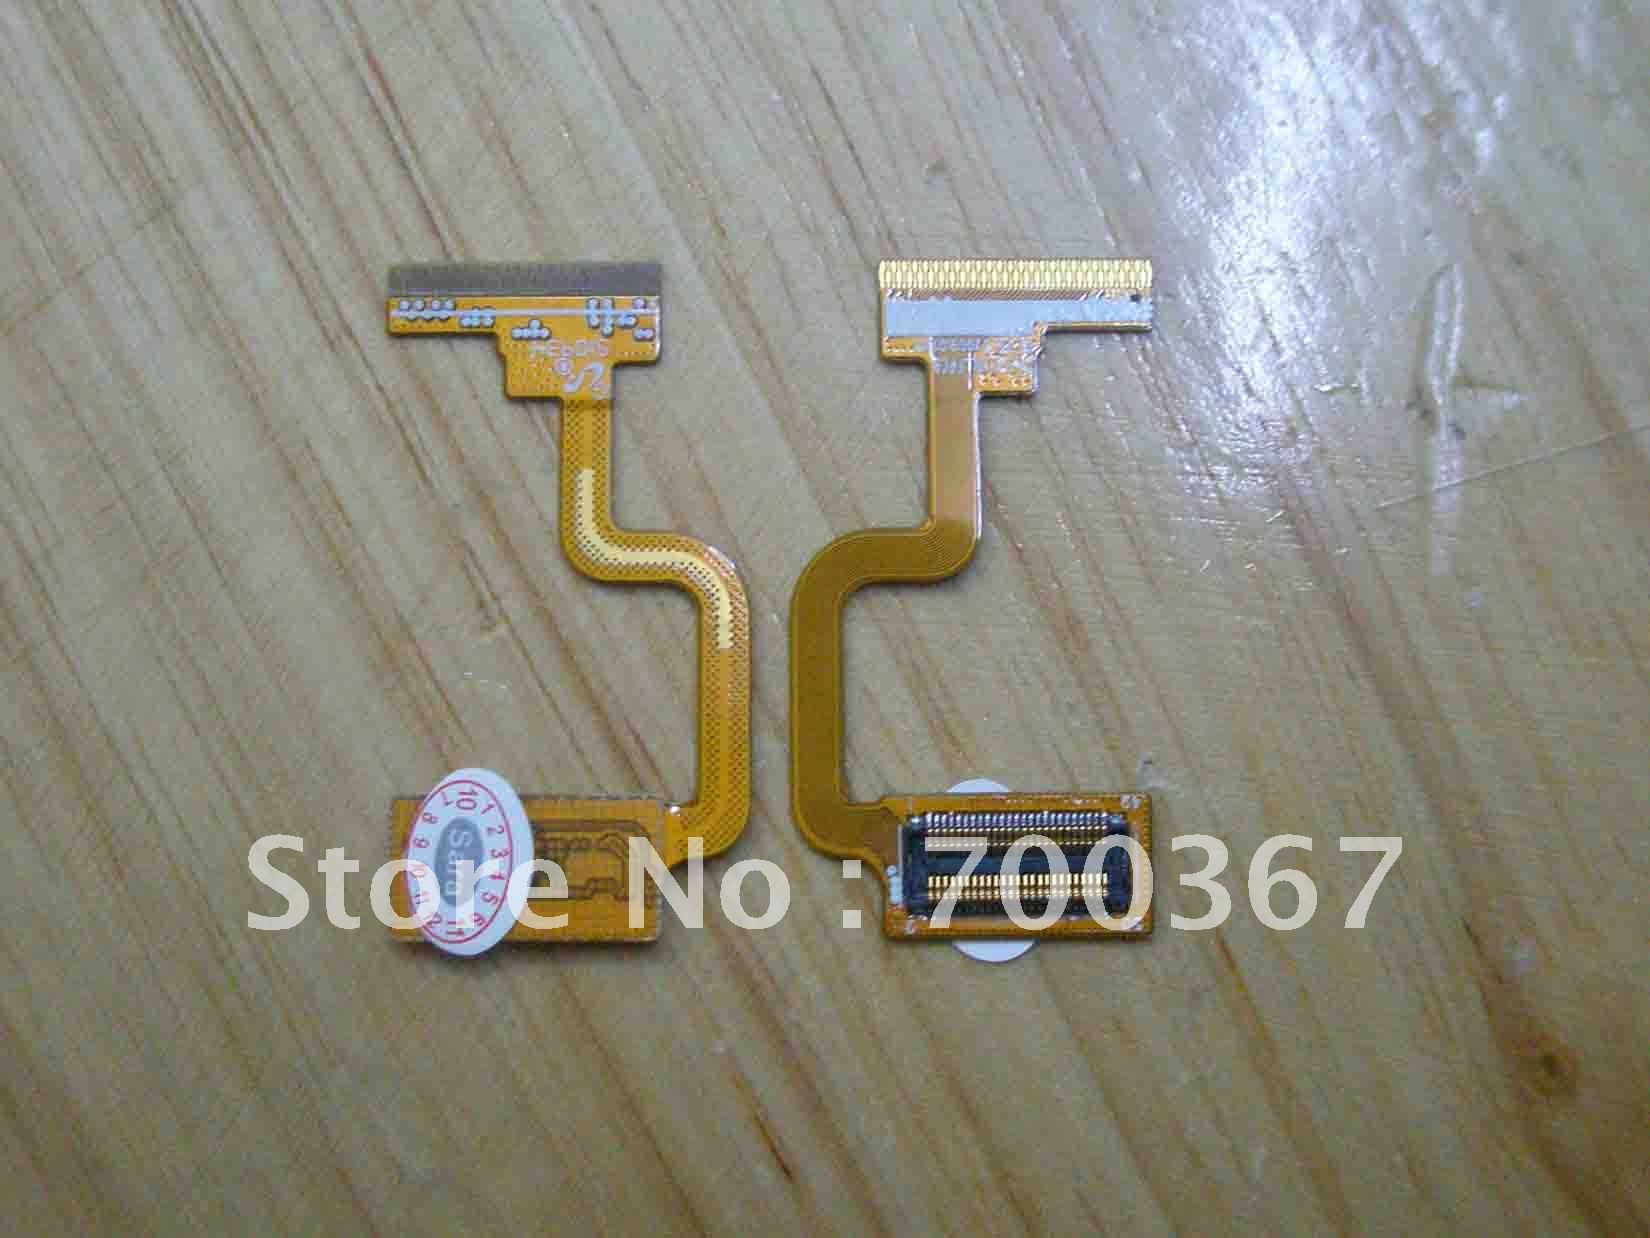 1pcs/lot brand new flex cable for E2210+free shipping(China (Mainland))